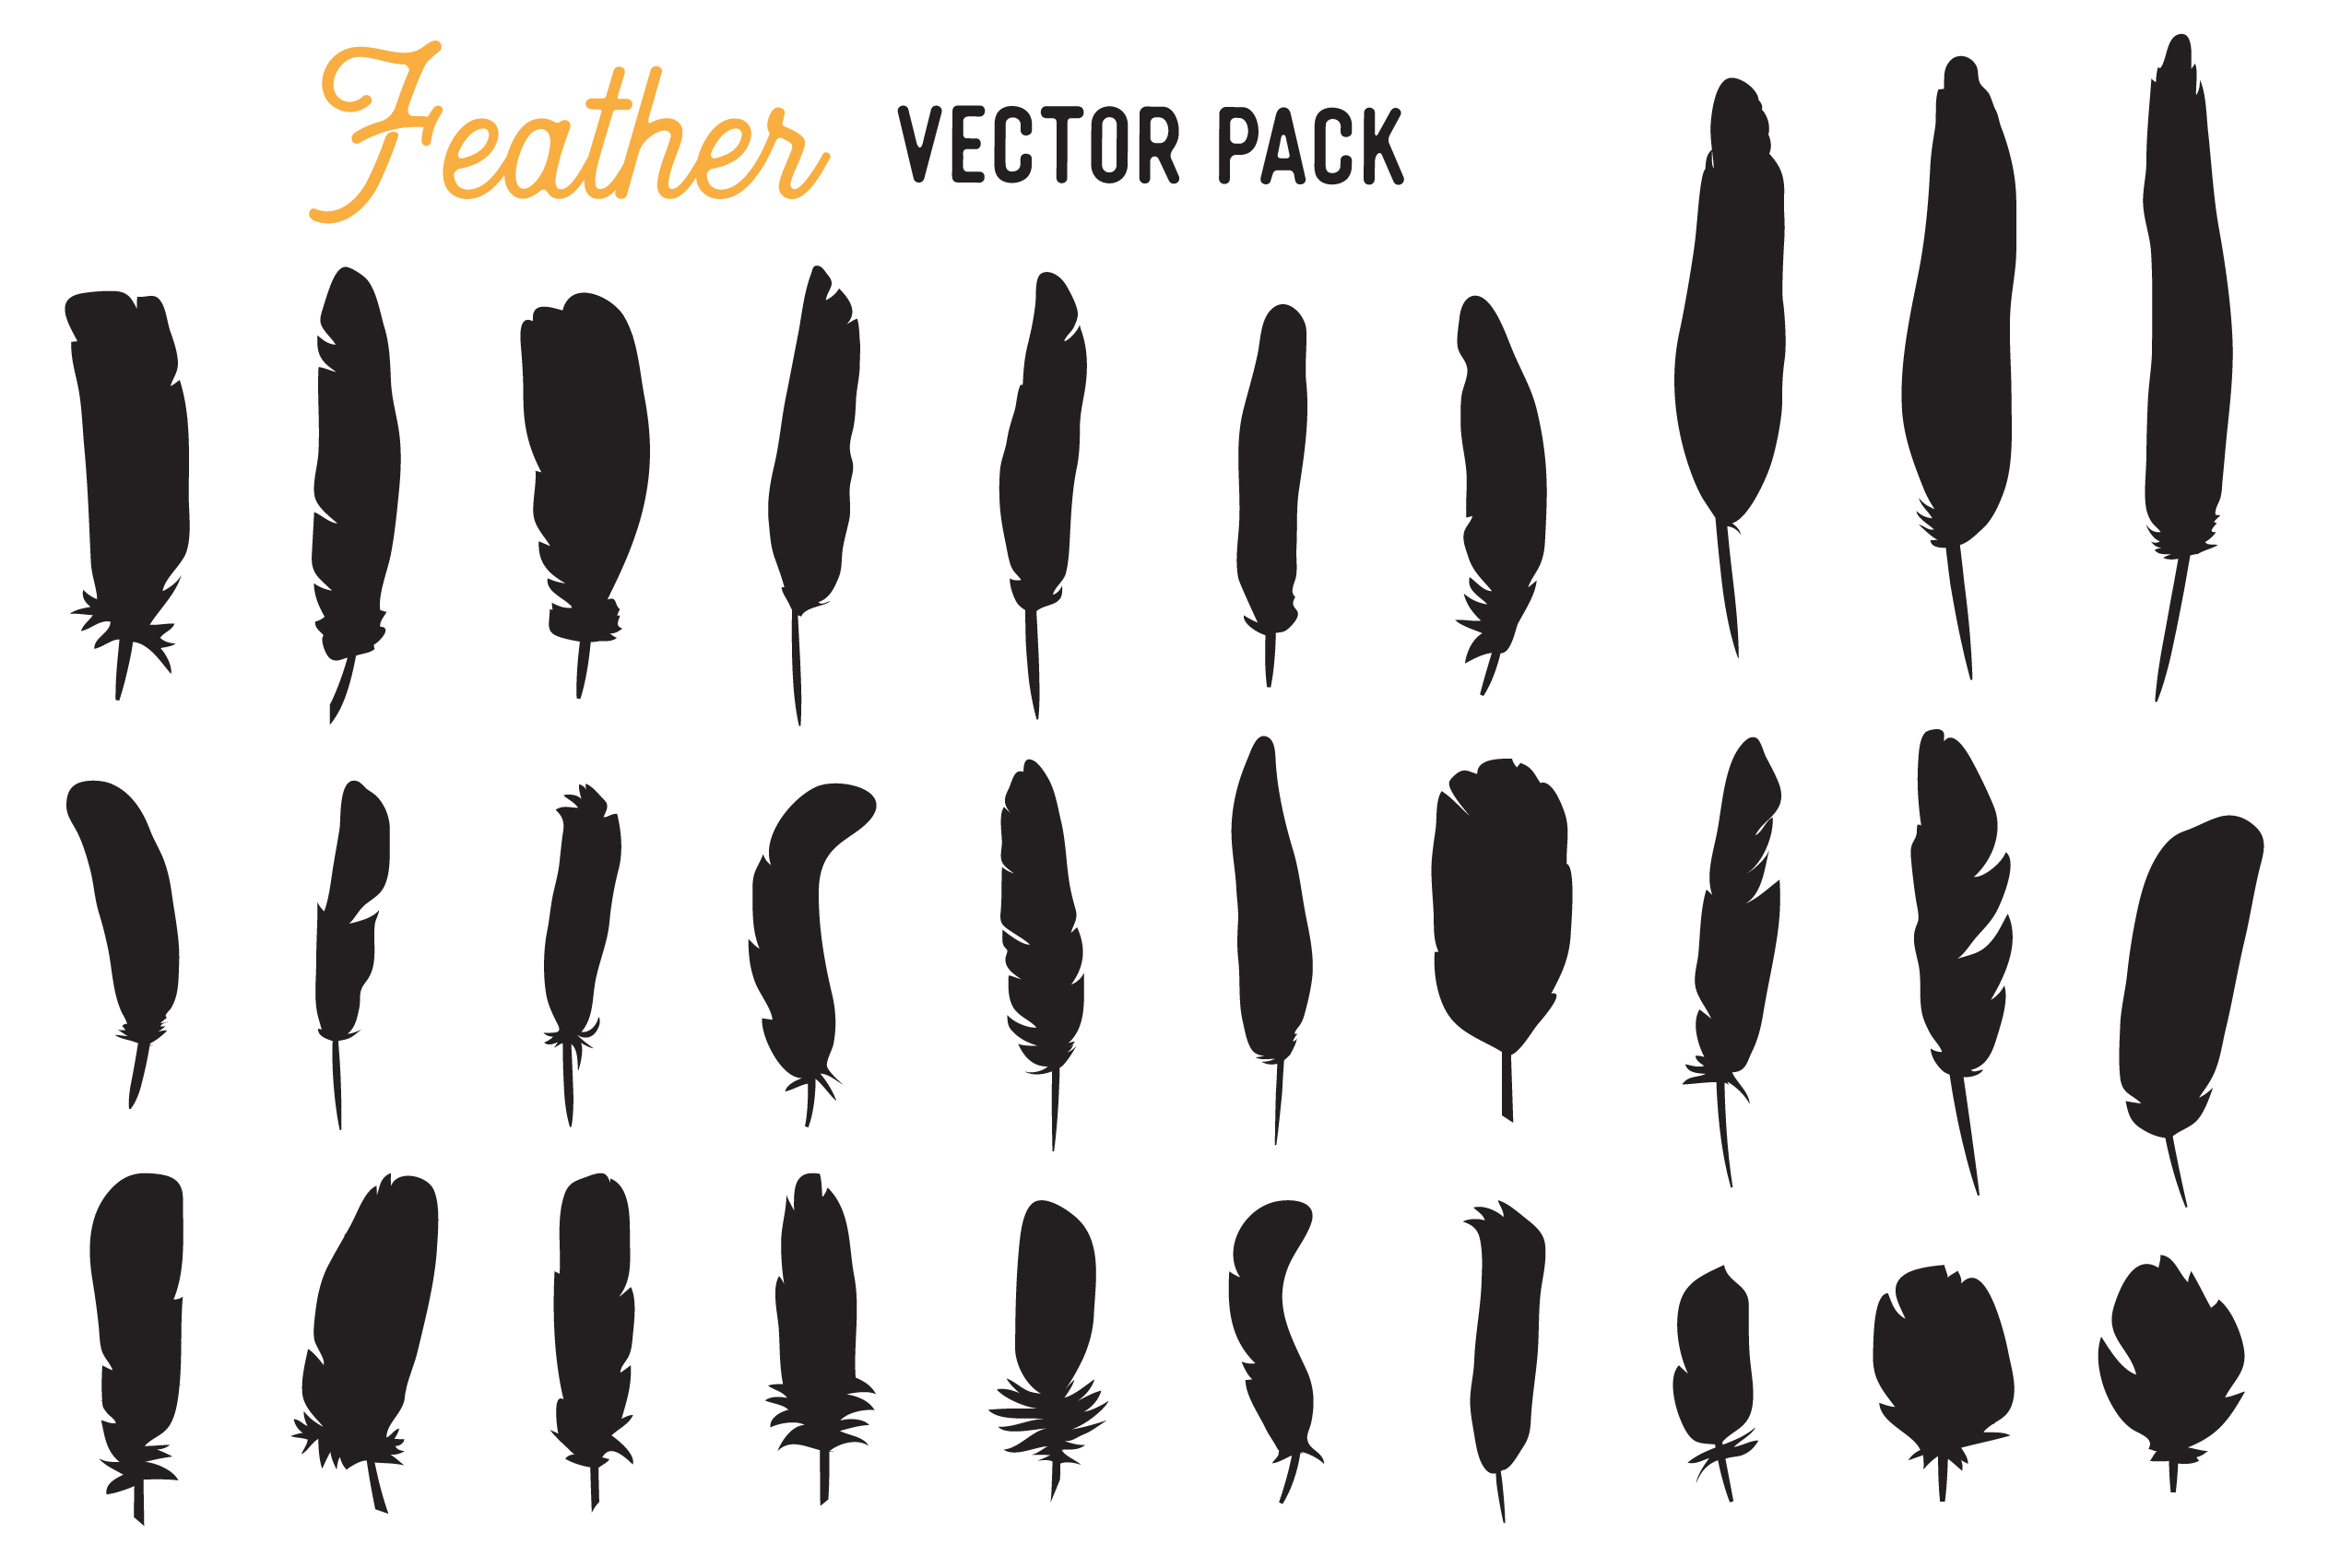 Download Free Feather Vector Clipart Pack Graphic By The Gradient Fox for Cricut Explore, Silhouette and other cutting machines.